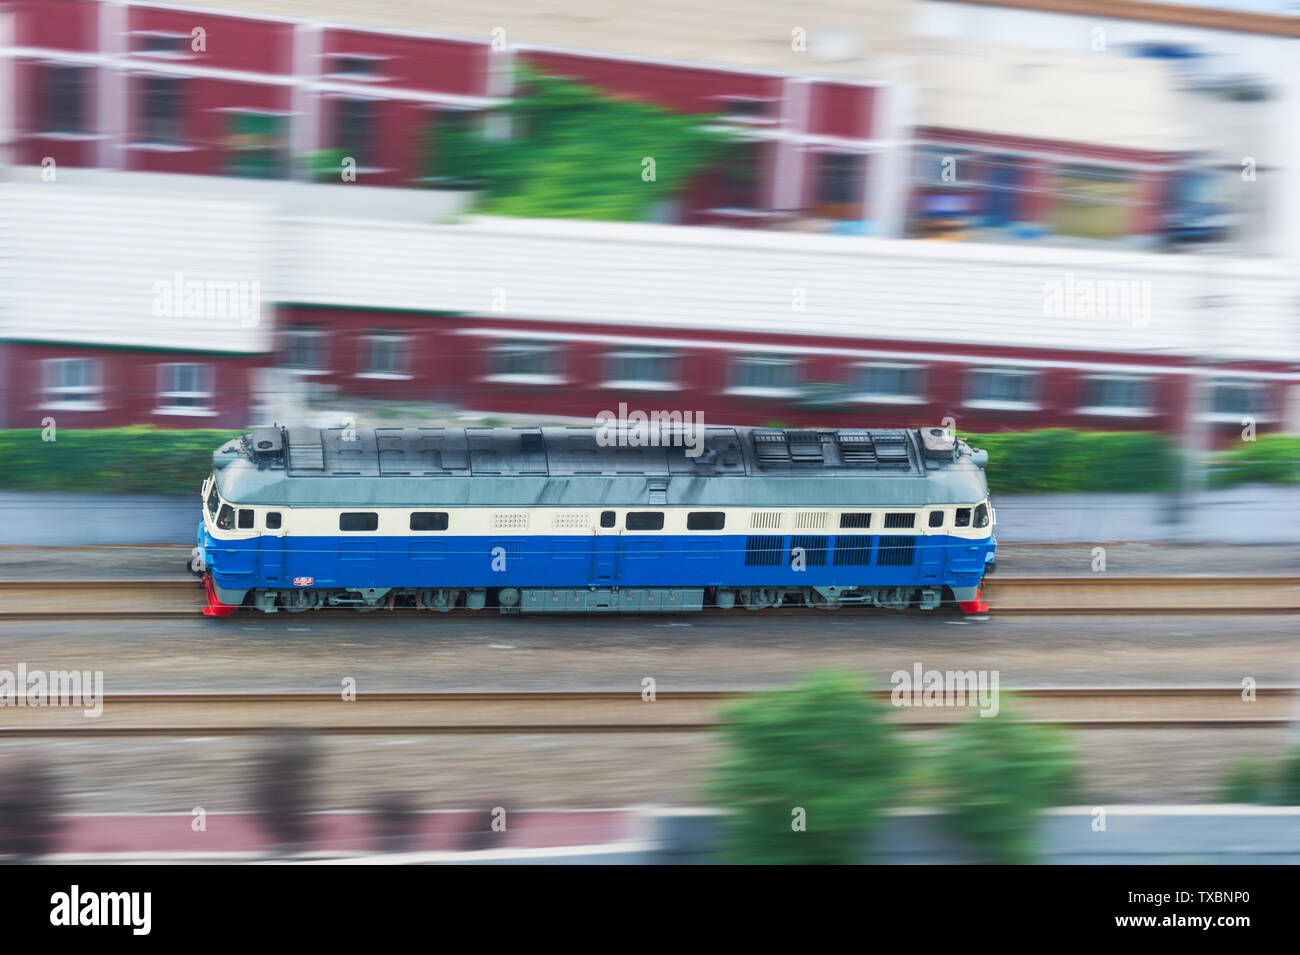 A high-speed internal combustion engine train on a railway. Stock Photo